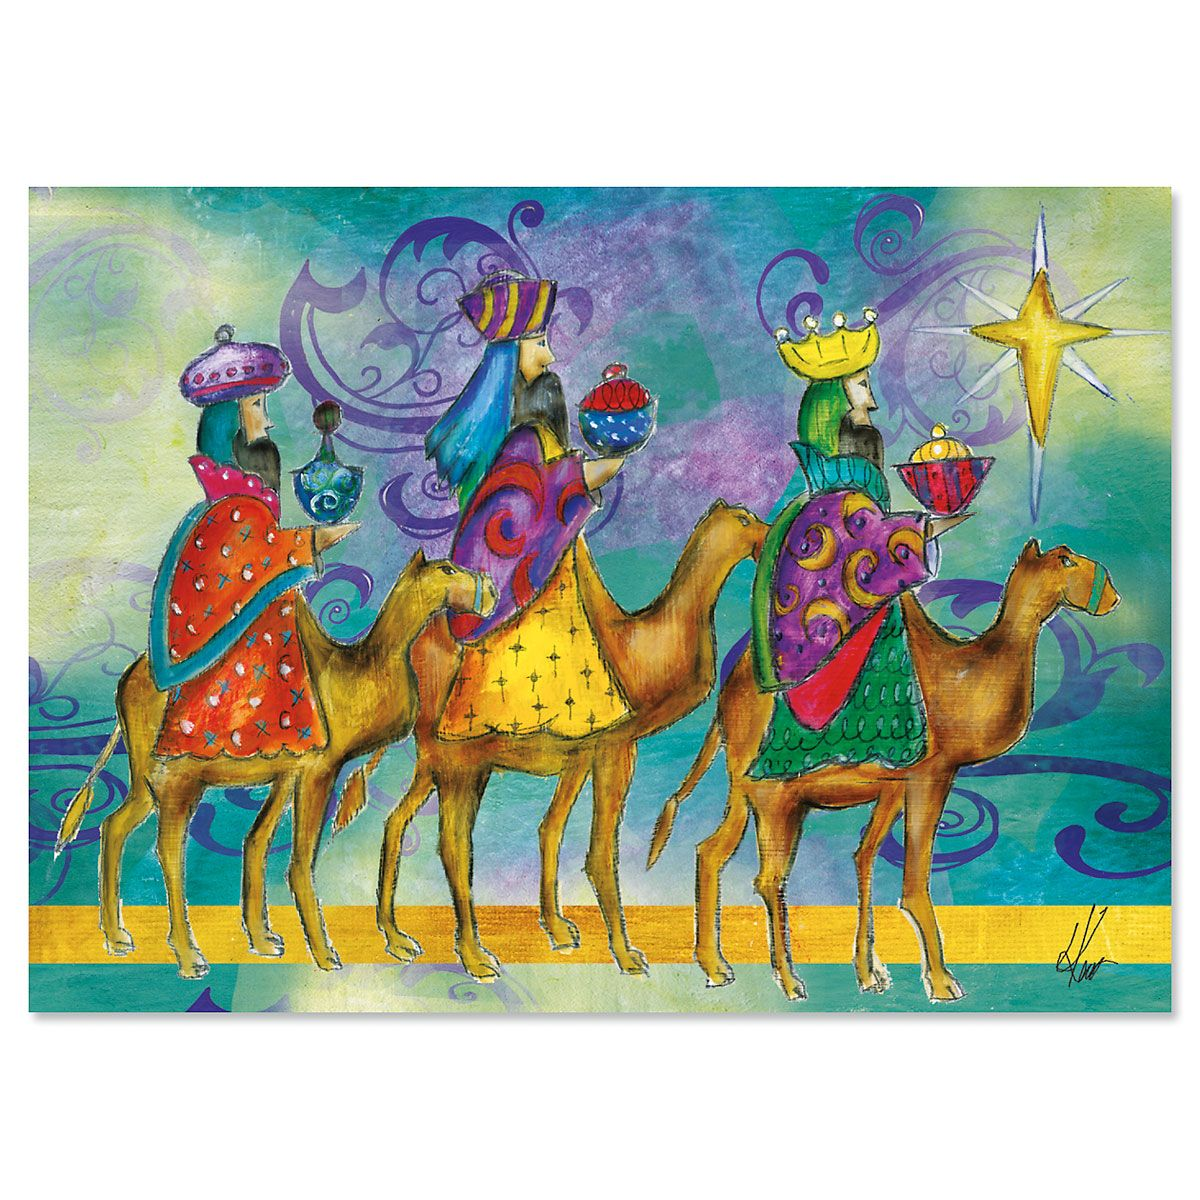 Wise Men Peace Nonpersonalized Christmas Cards - Set of 72